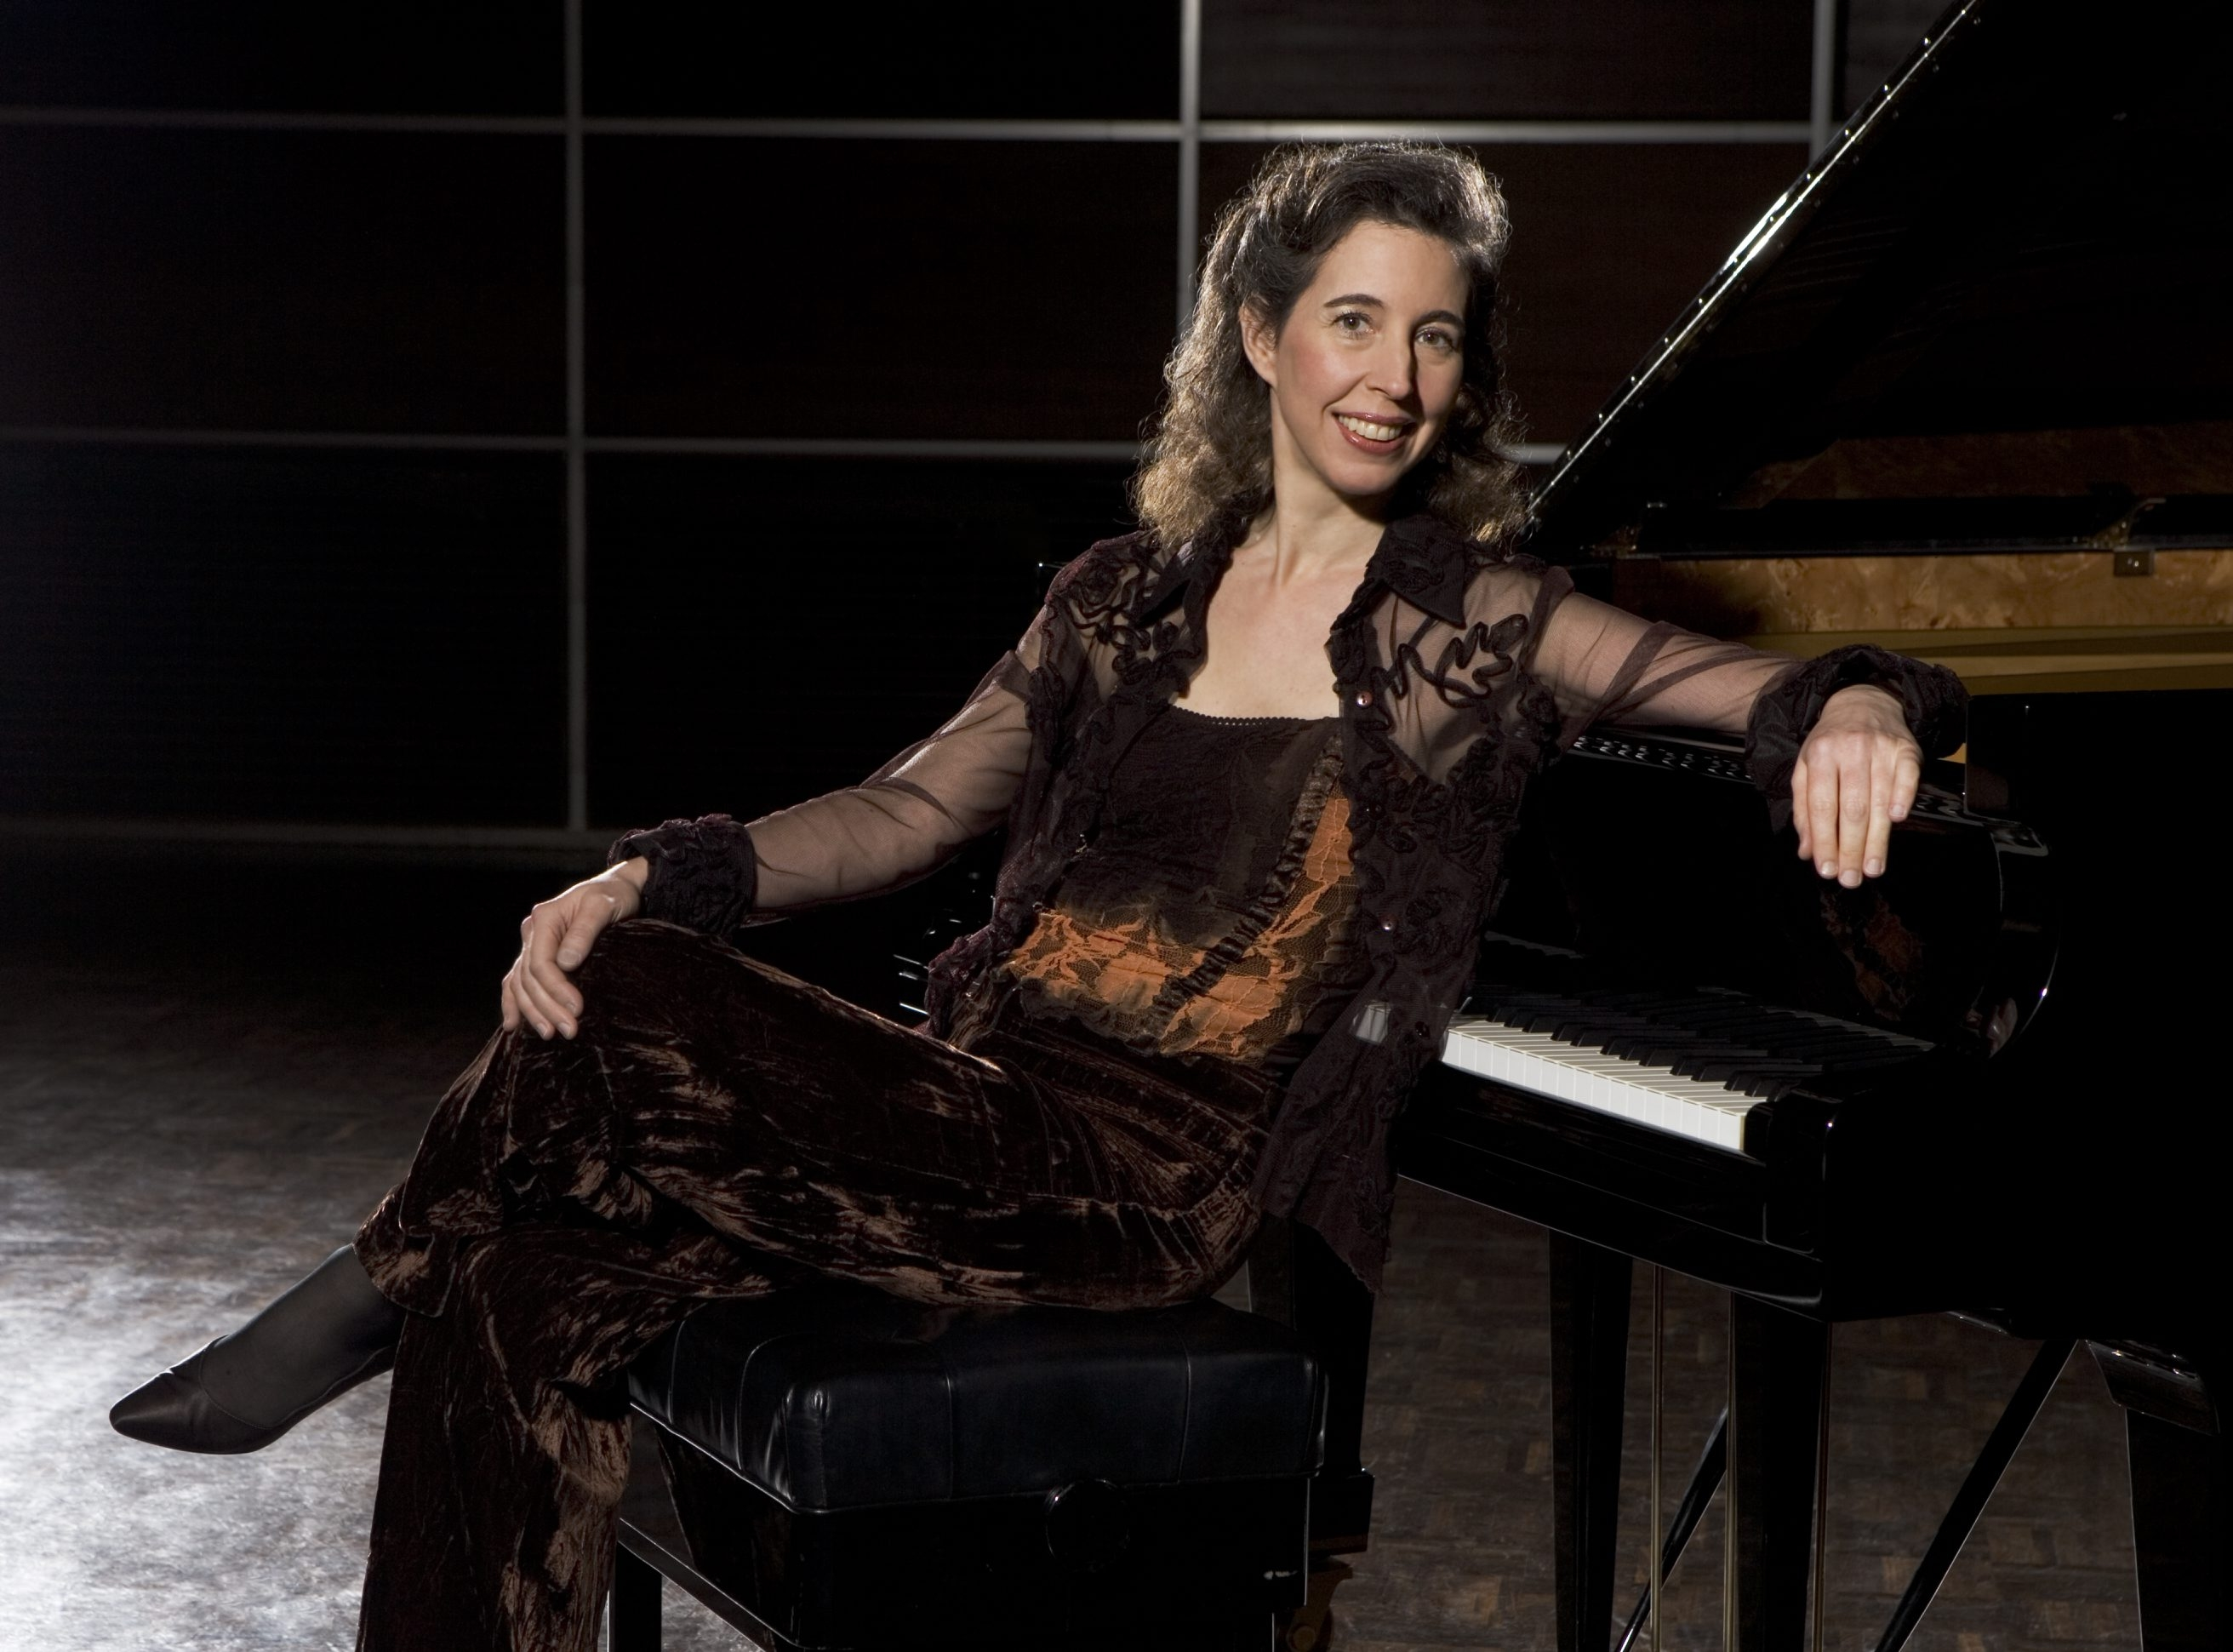 Pianist Angela Hewitt makes a magnificent recording of Gabriel Faure's piano music.